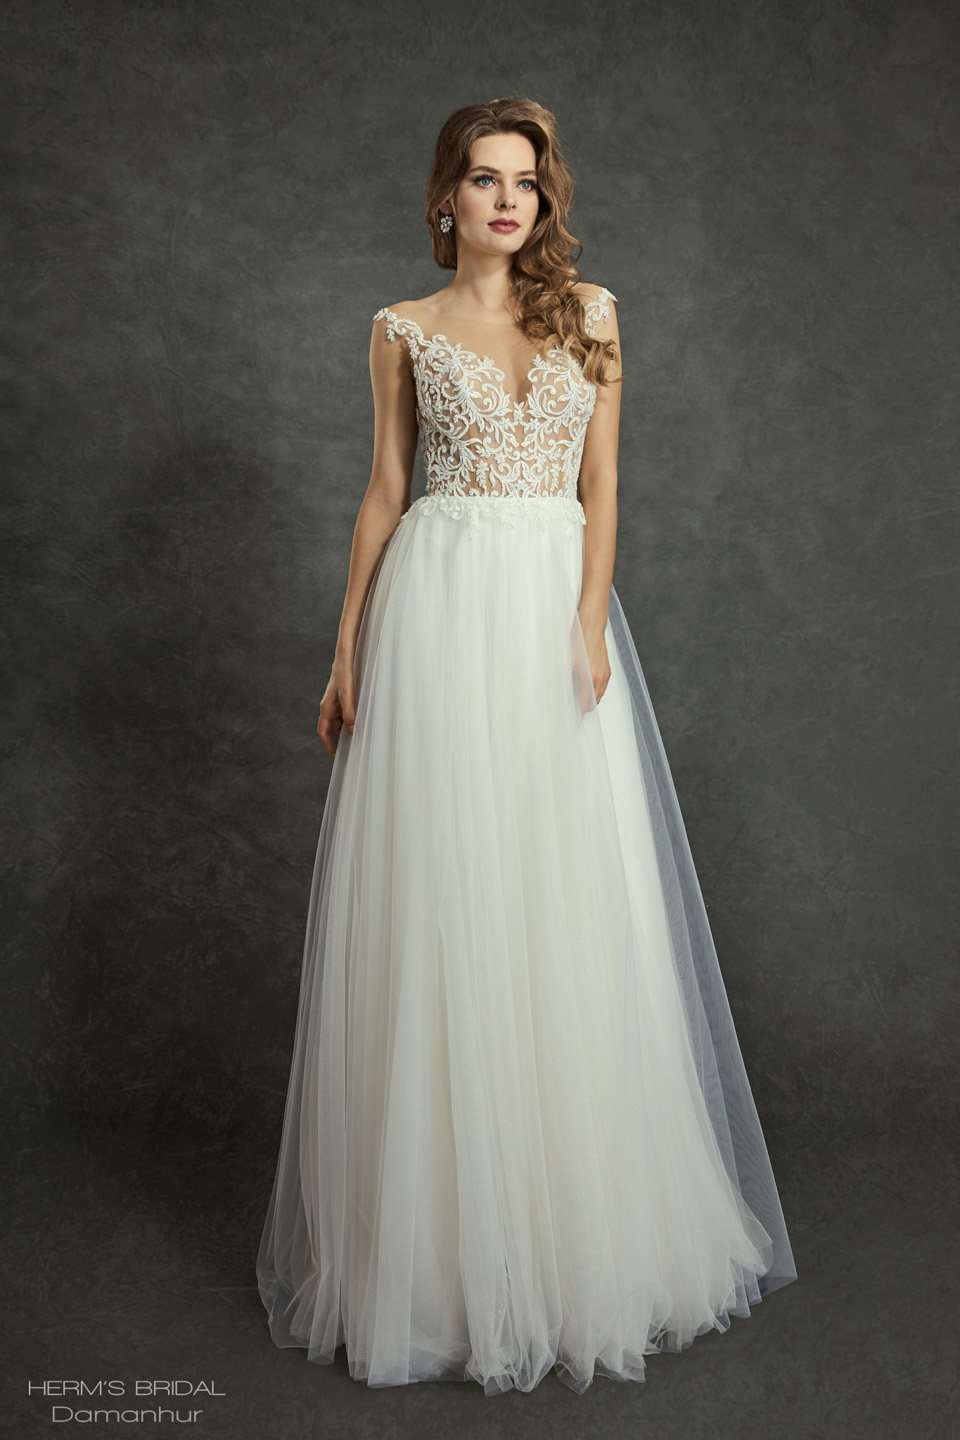 suknia slubna herms bridal Damanhur 1